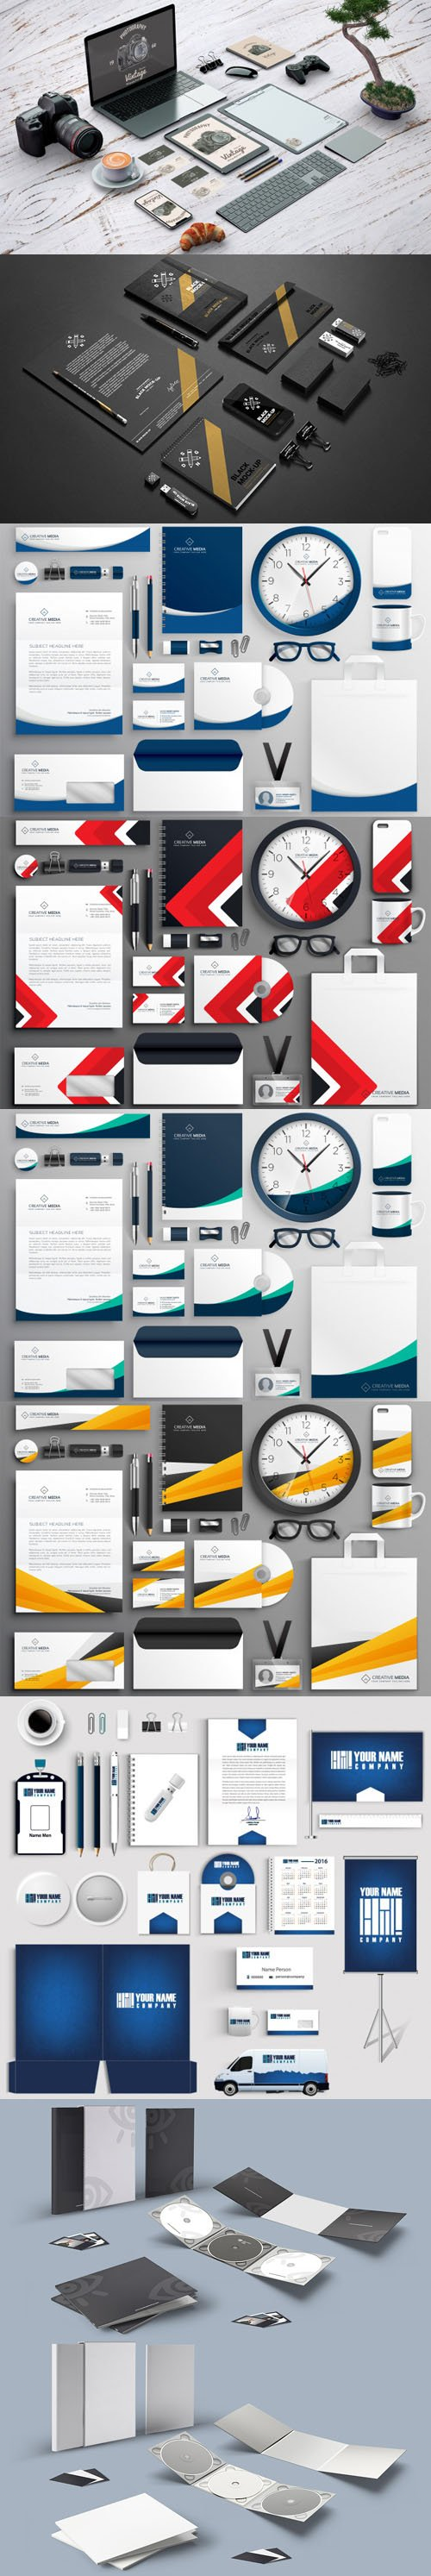 8 Realistic Business Branding Stationery Collection [EPS/PSD]